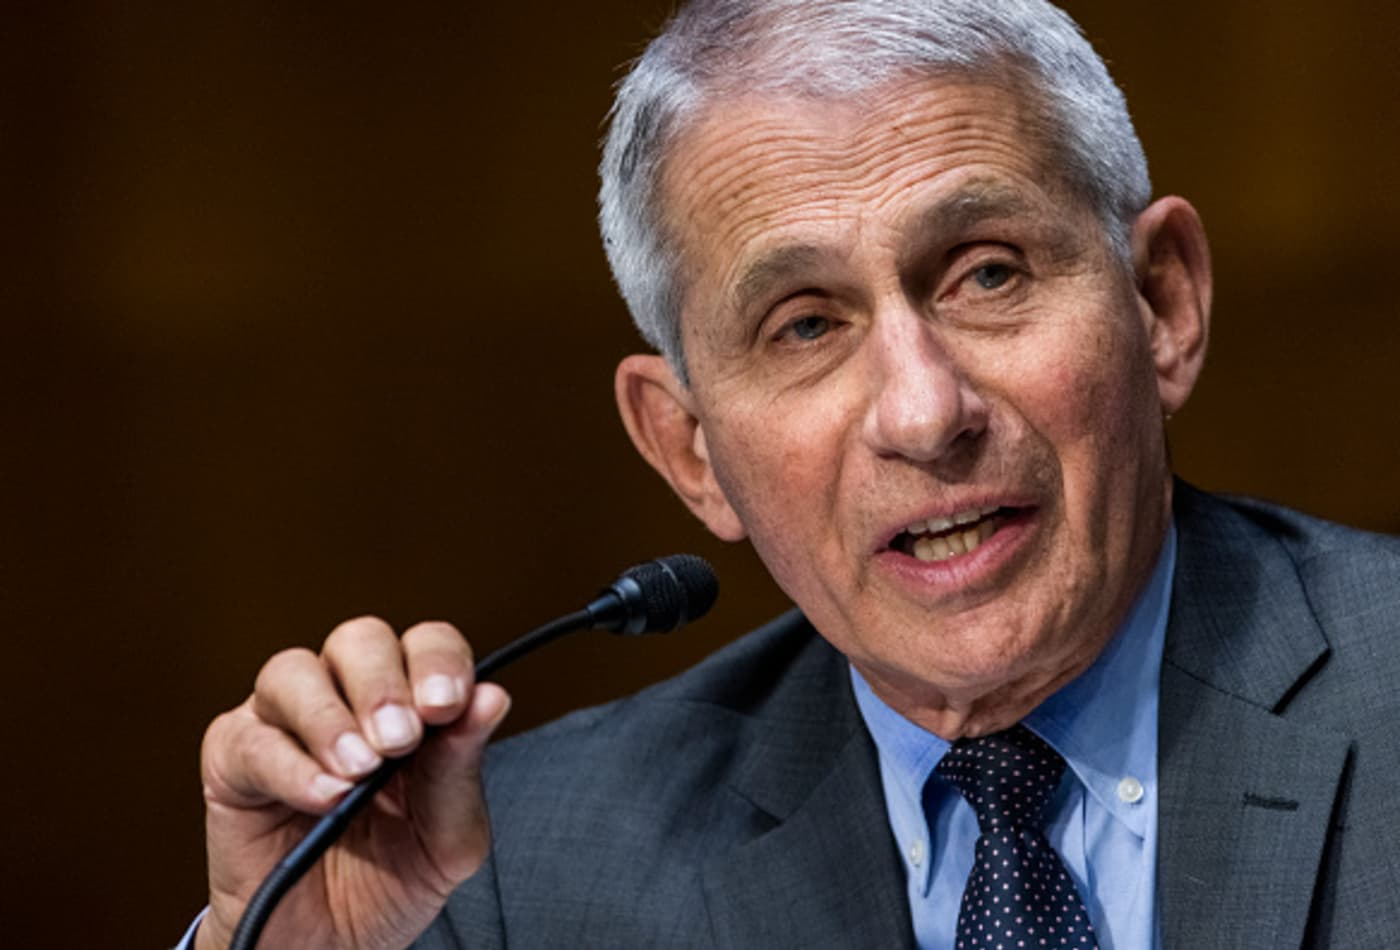 Fauci says U.S. can still end HIV epidemic by 2030 despite Covid pandemic